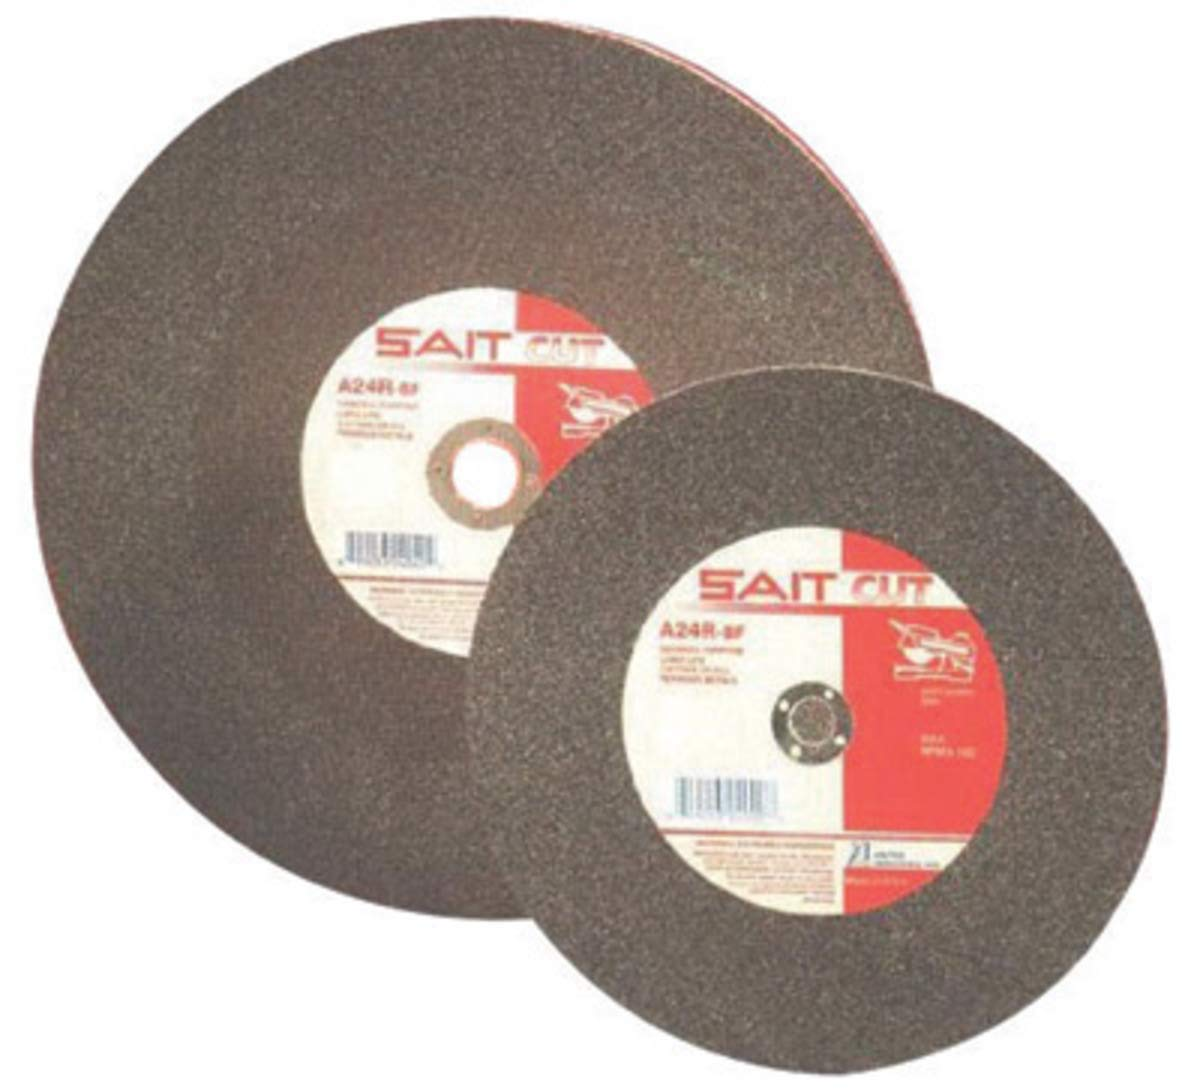 """United Abrasives 20"""" X 3/16"""" X 1"""" A24N 24 Grit Aluminum Oxide Type 1 Cut Off Wheel, Package Size: 5 Each"""